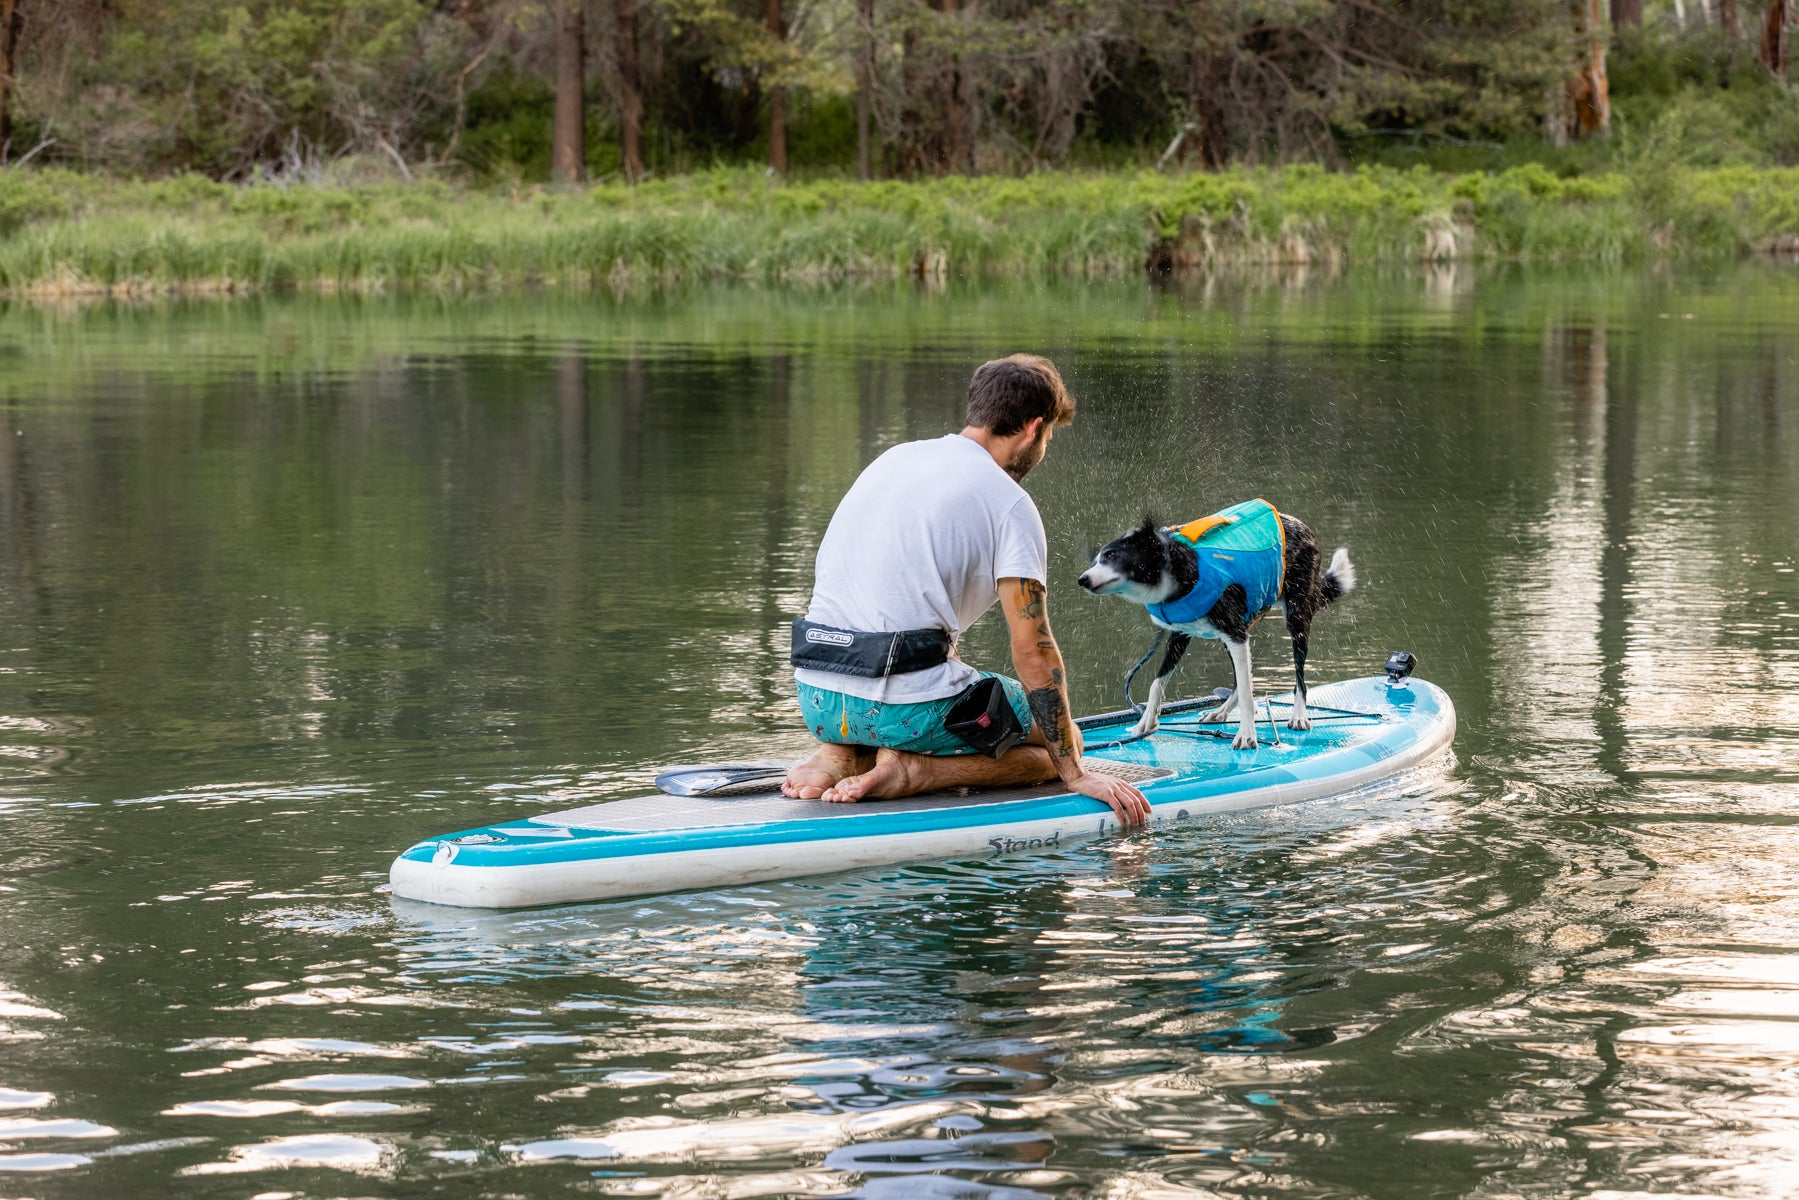 Human on paddleboard with dog shaking water off after going for a swim